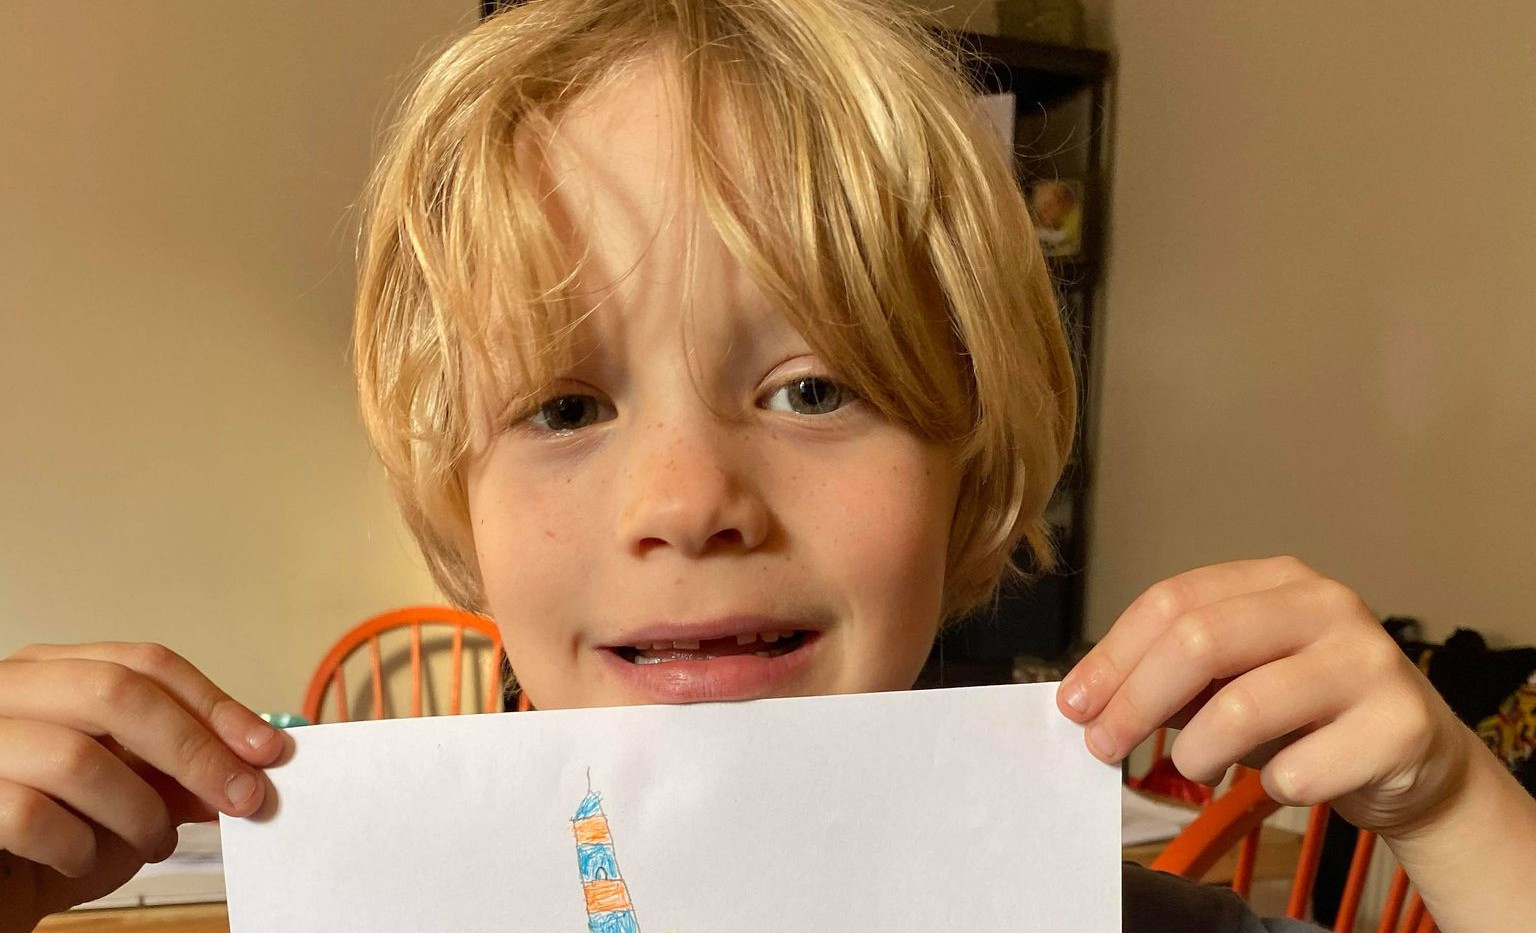 George and his drawing of the lighthouse